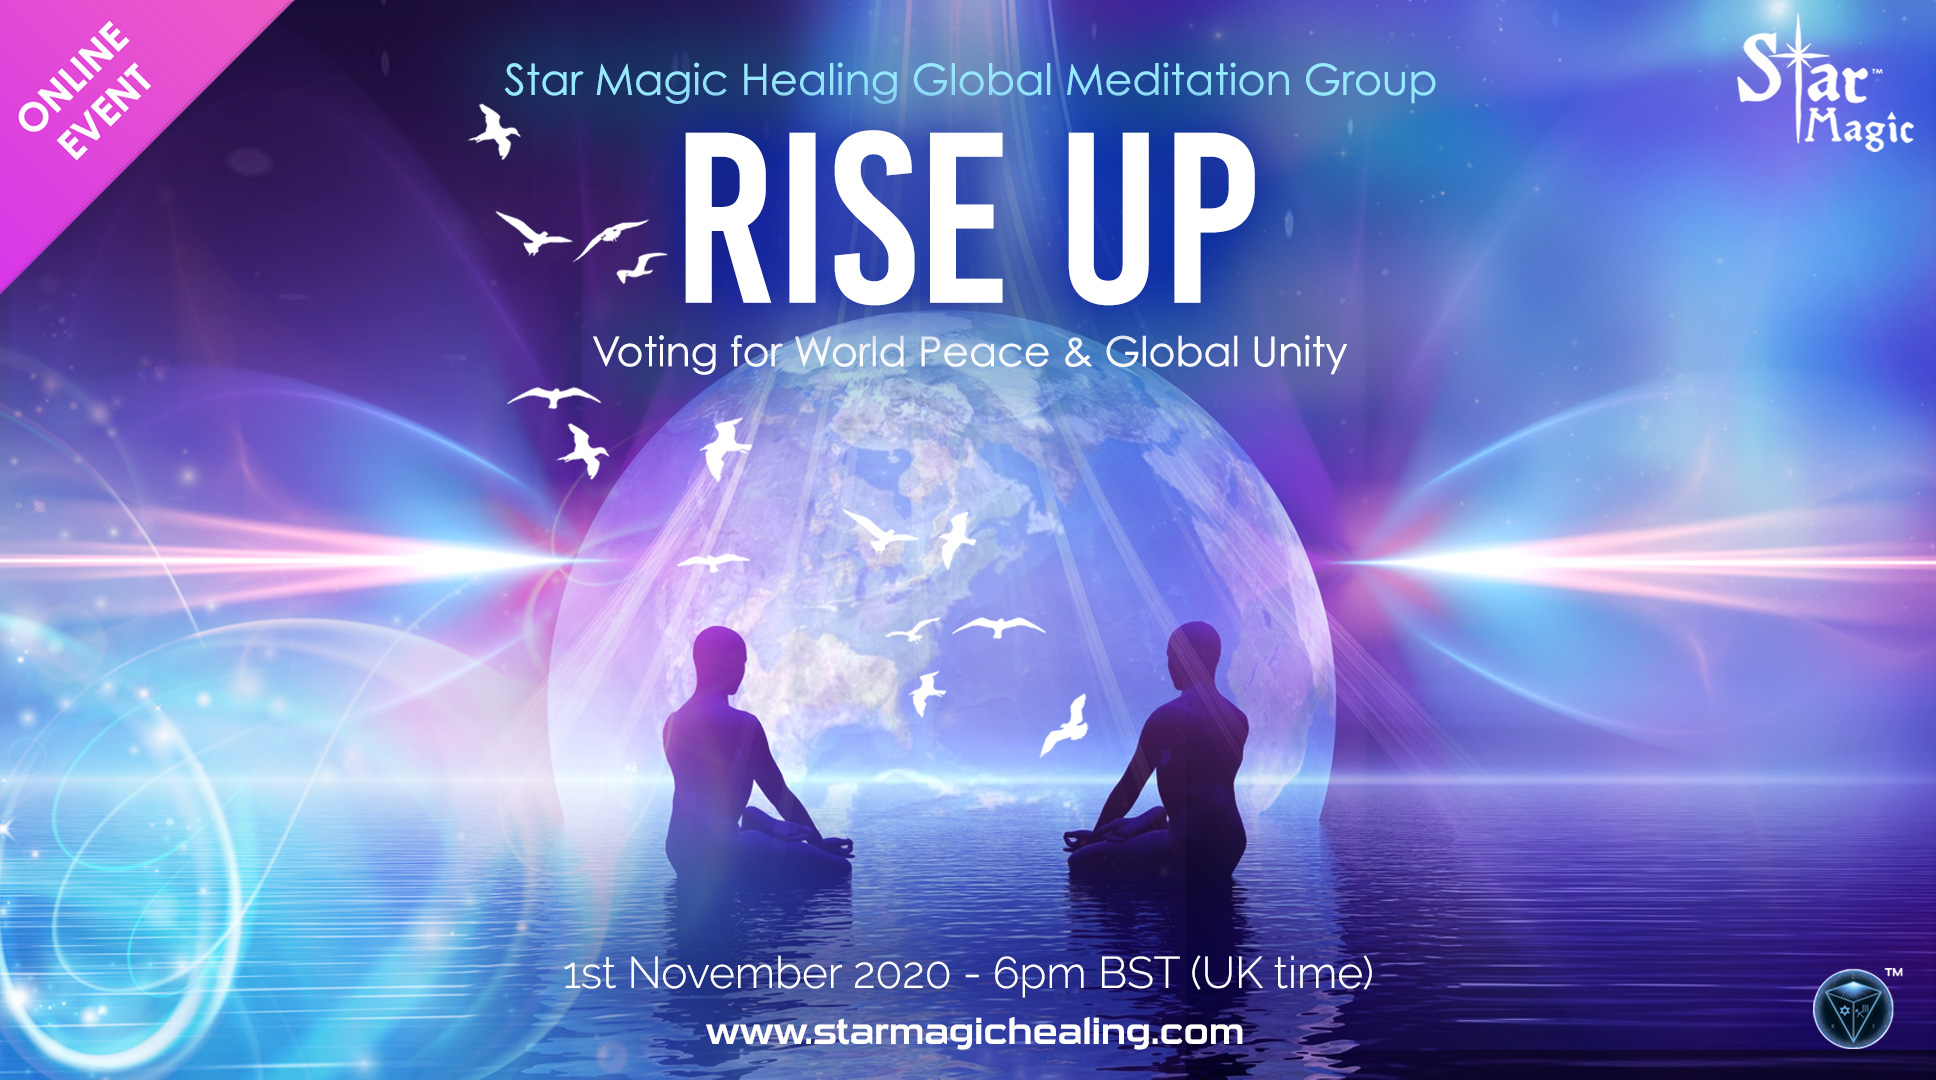 Rise Up - Voting For World Peace & Global Unity